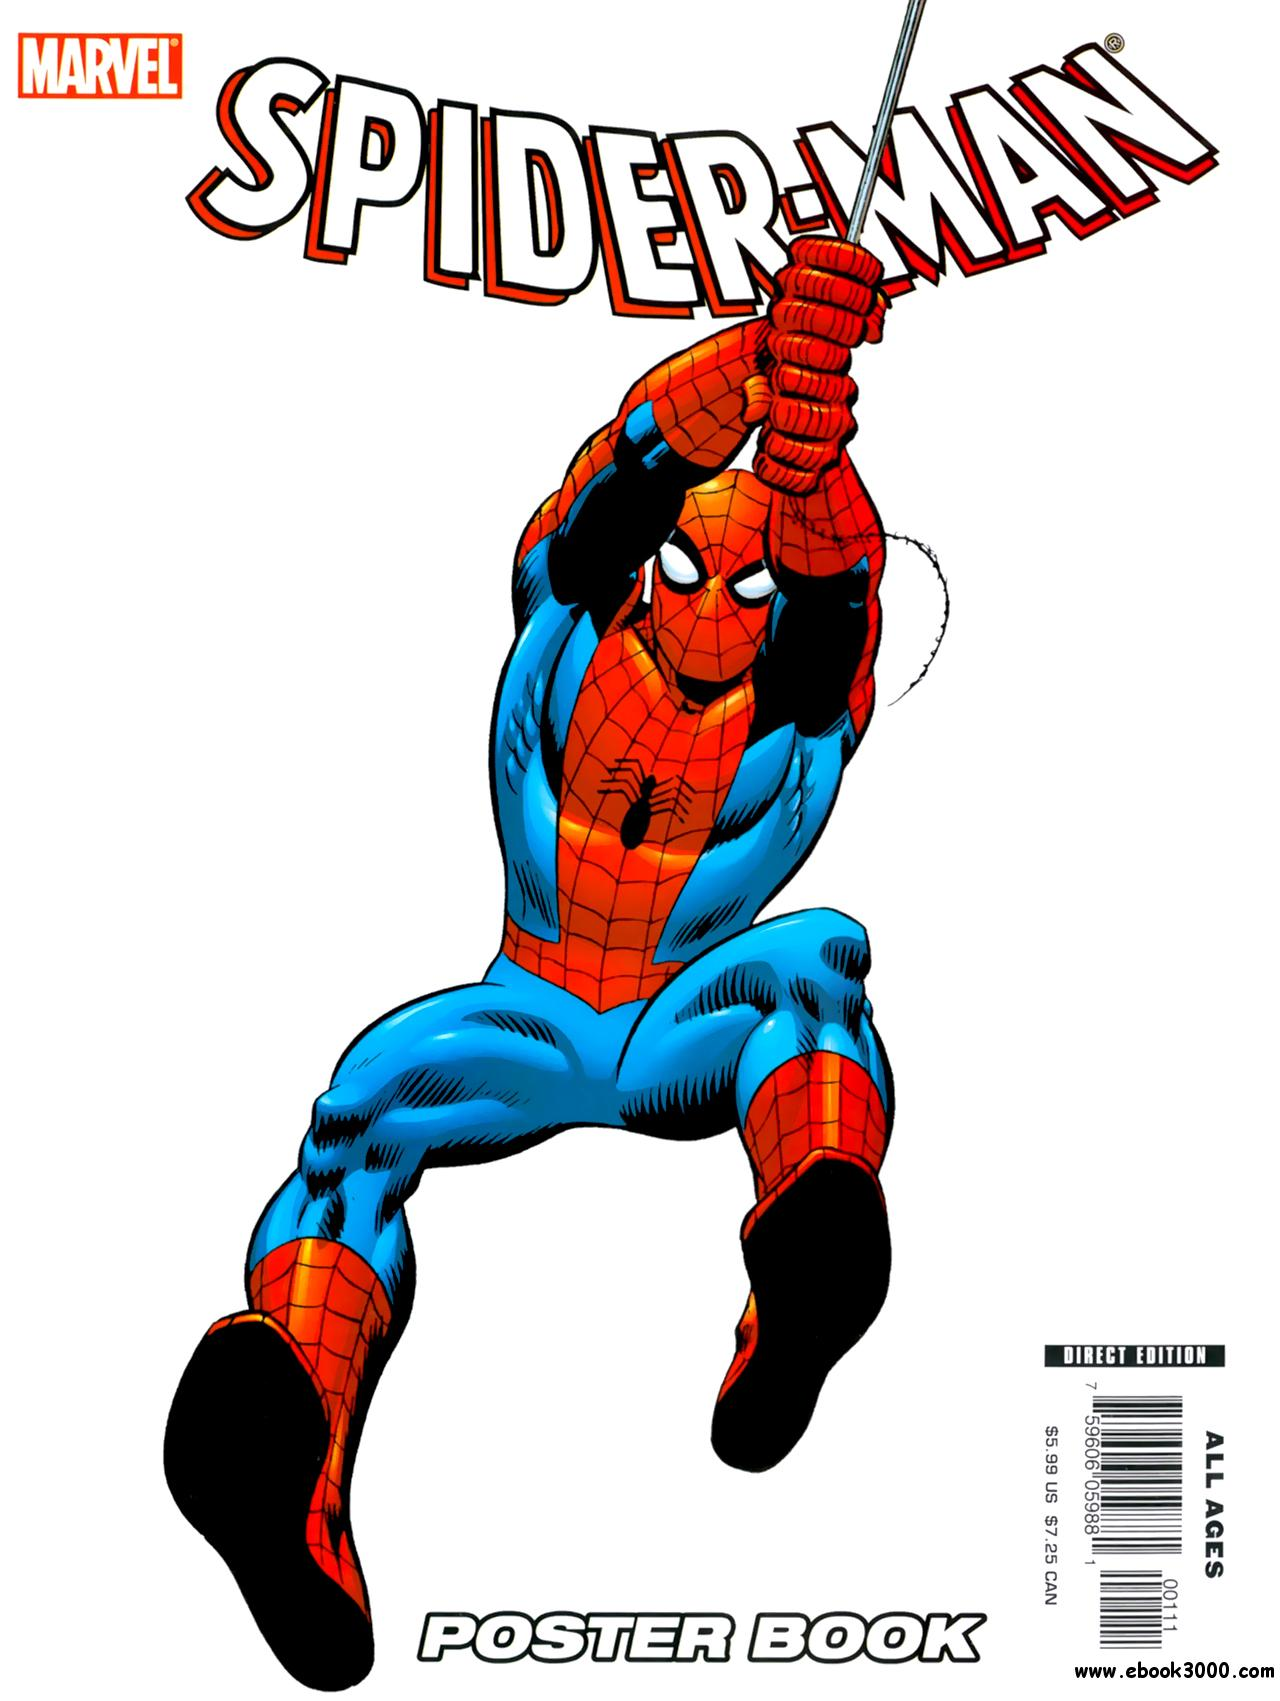 Spider-Man Poster Book (2007) free download